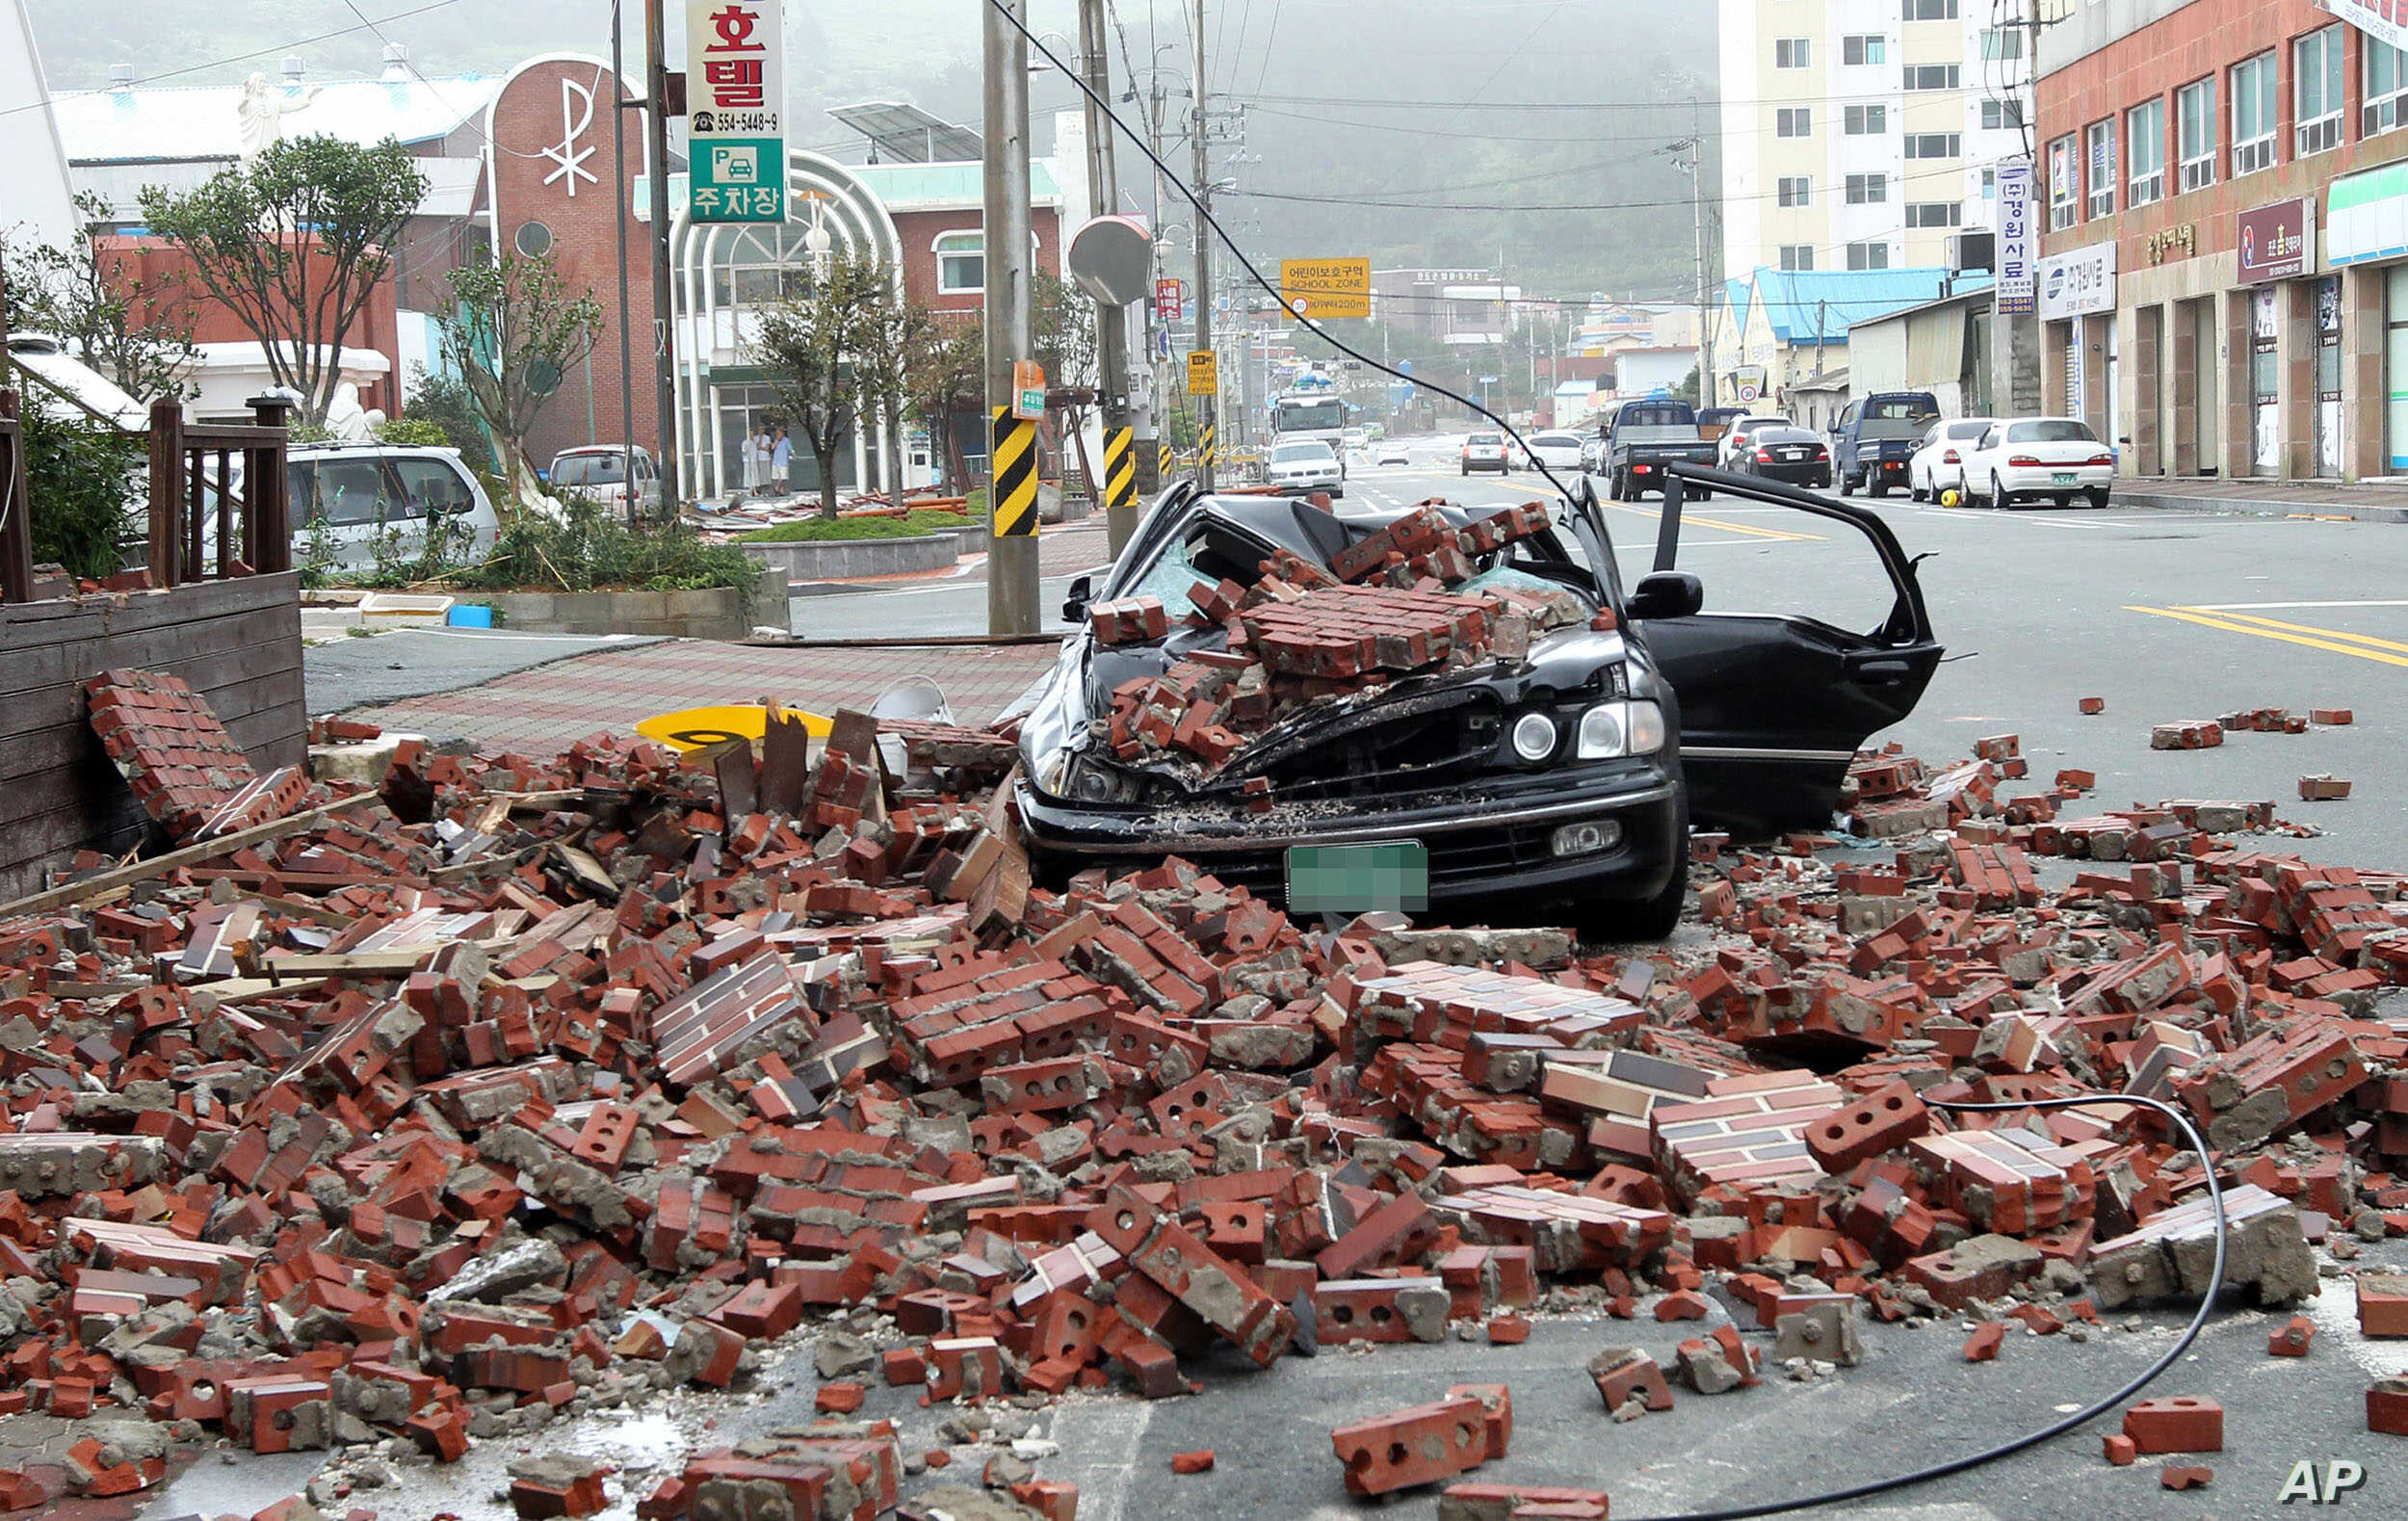 A vehicle damaged by fallen bricks from a building as Typhoon Bolaven brings heavy downpours and winds to Wando, South Korea, August 28, 2012.